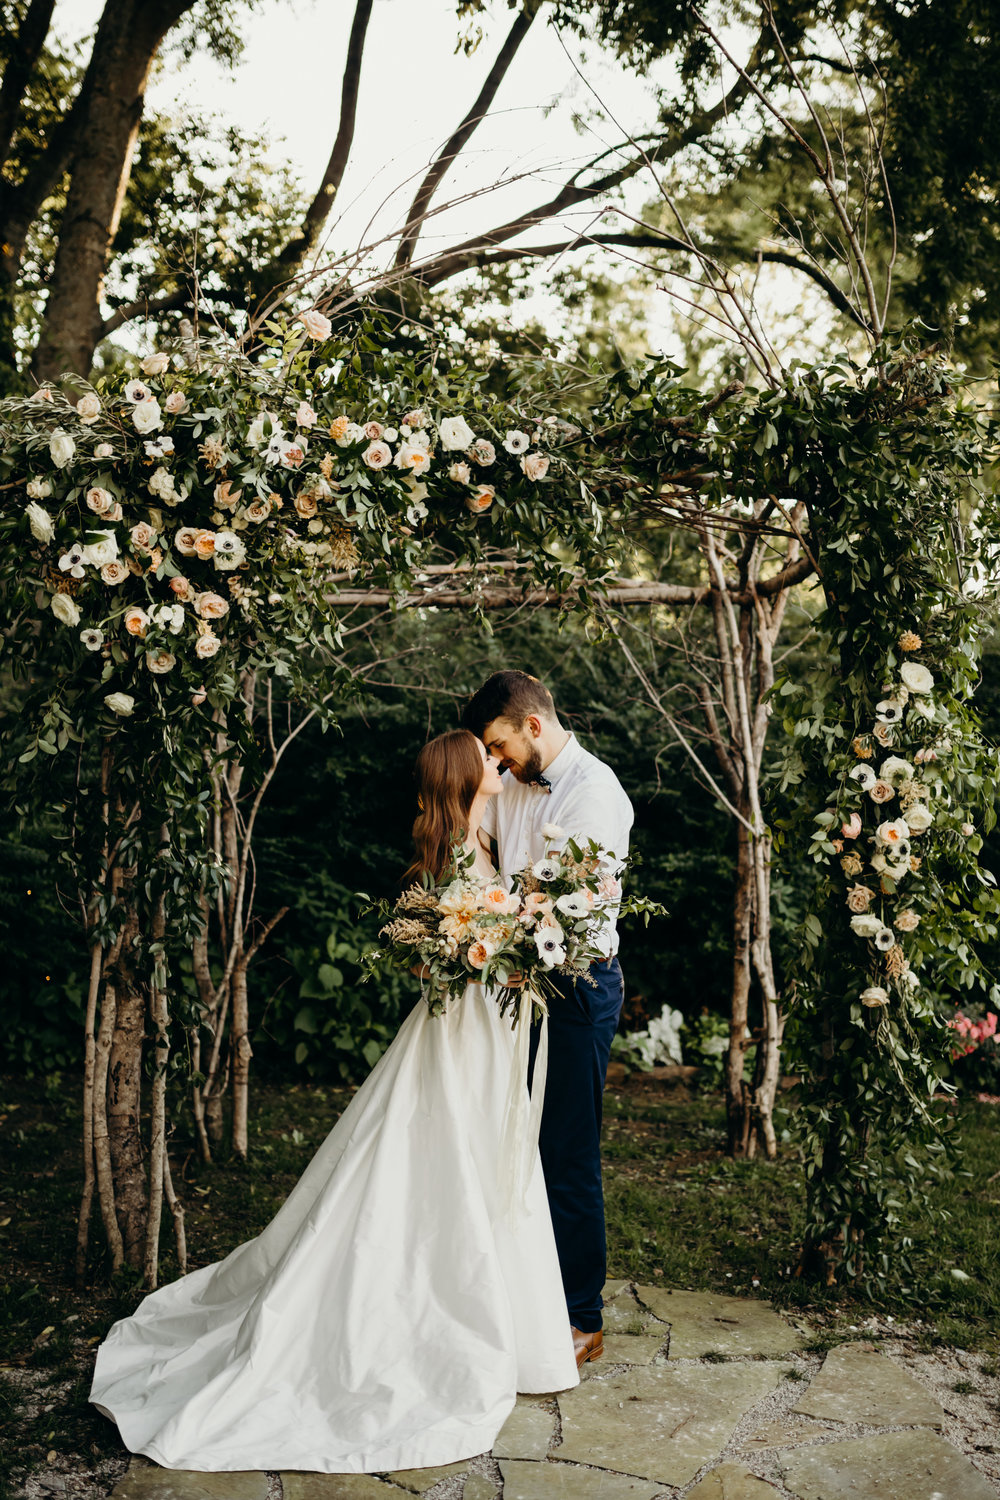 Meadow Hill Farm Wedding // Lush greenery and blush flowers on the arbor